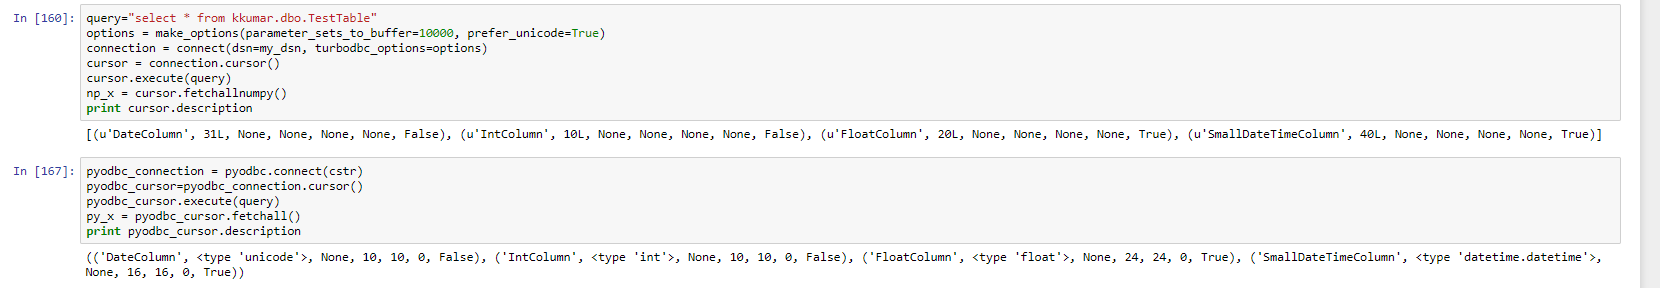 MSsql date column is loaded as string instead of datetime64